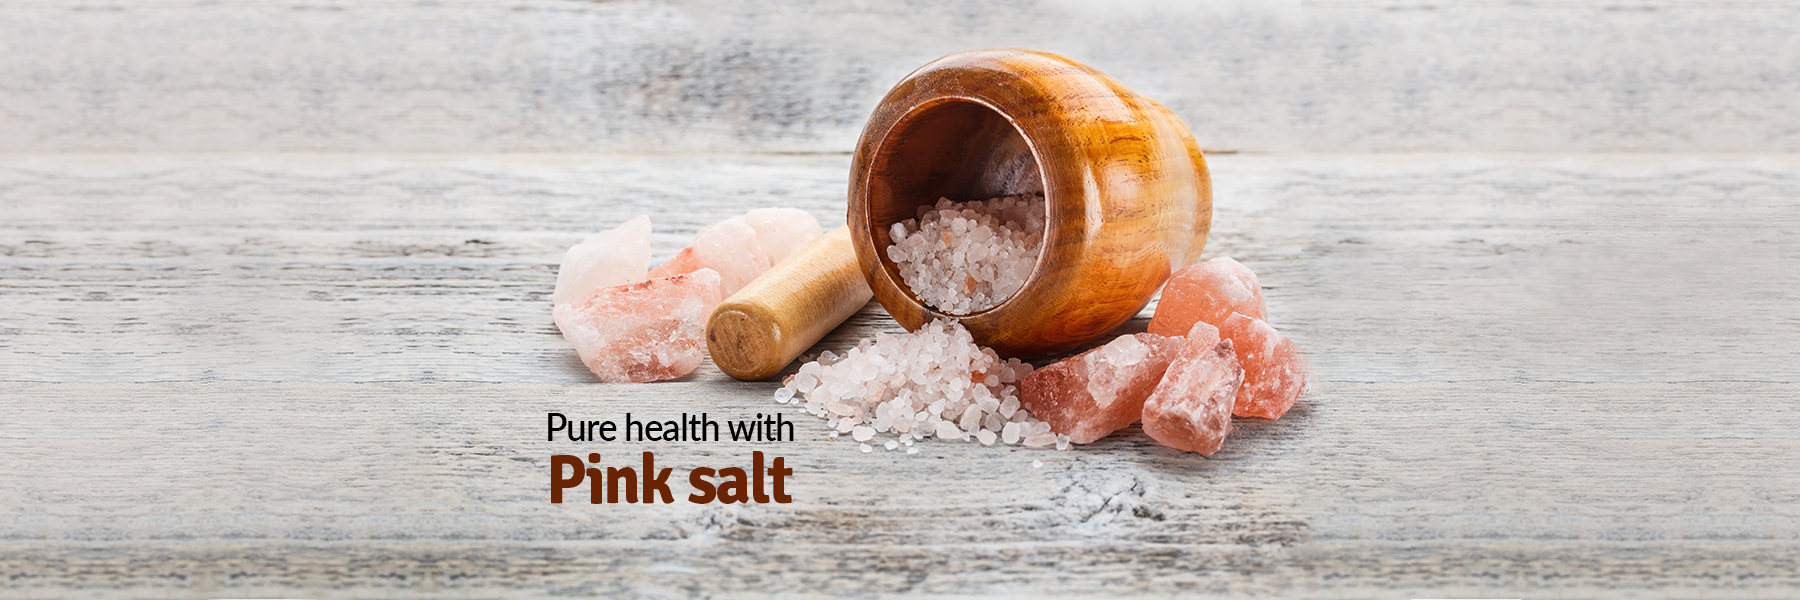 Pure health with Pink Salt